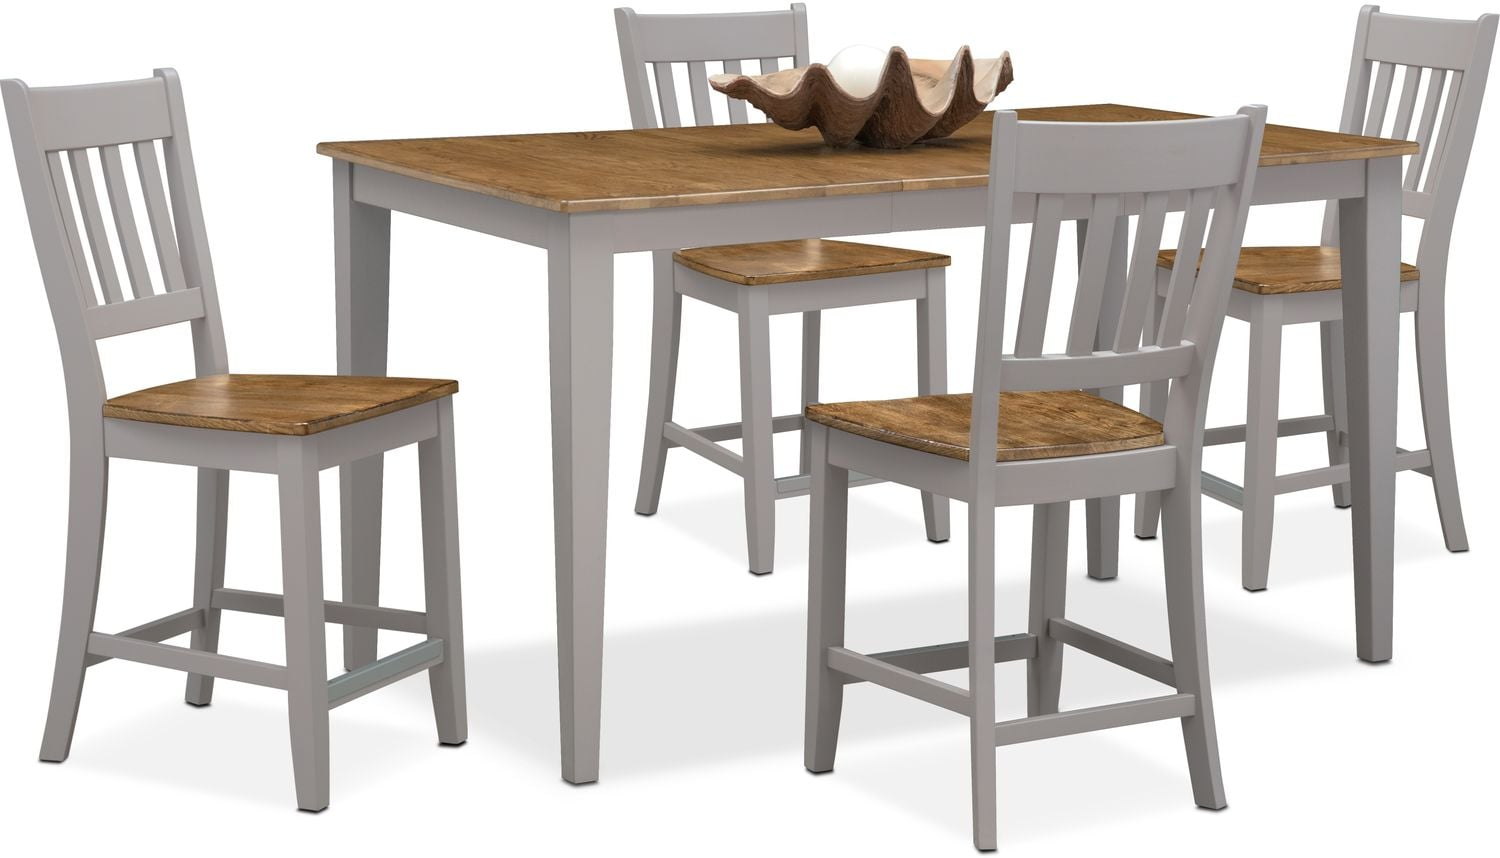 nantucket counter height table and 4 slat back chairs oak and gray american signature furniture. Black Bedroom Furniture Sets. Home Design Ideas